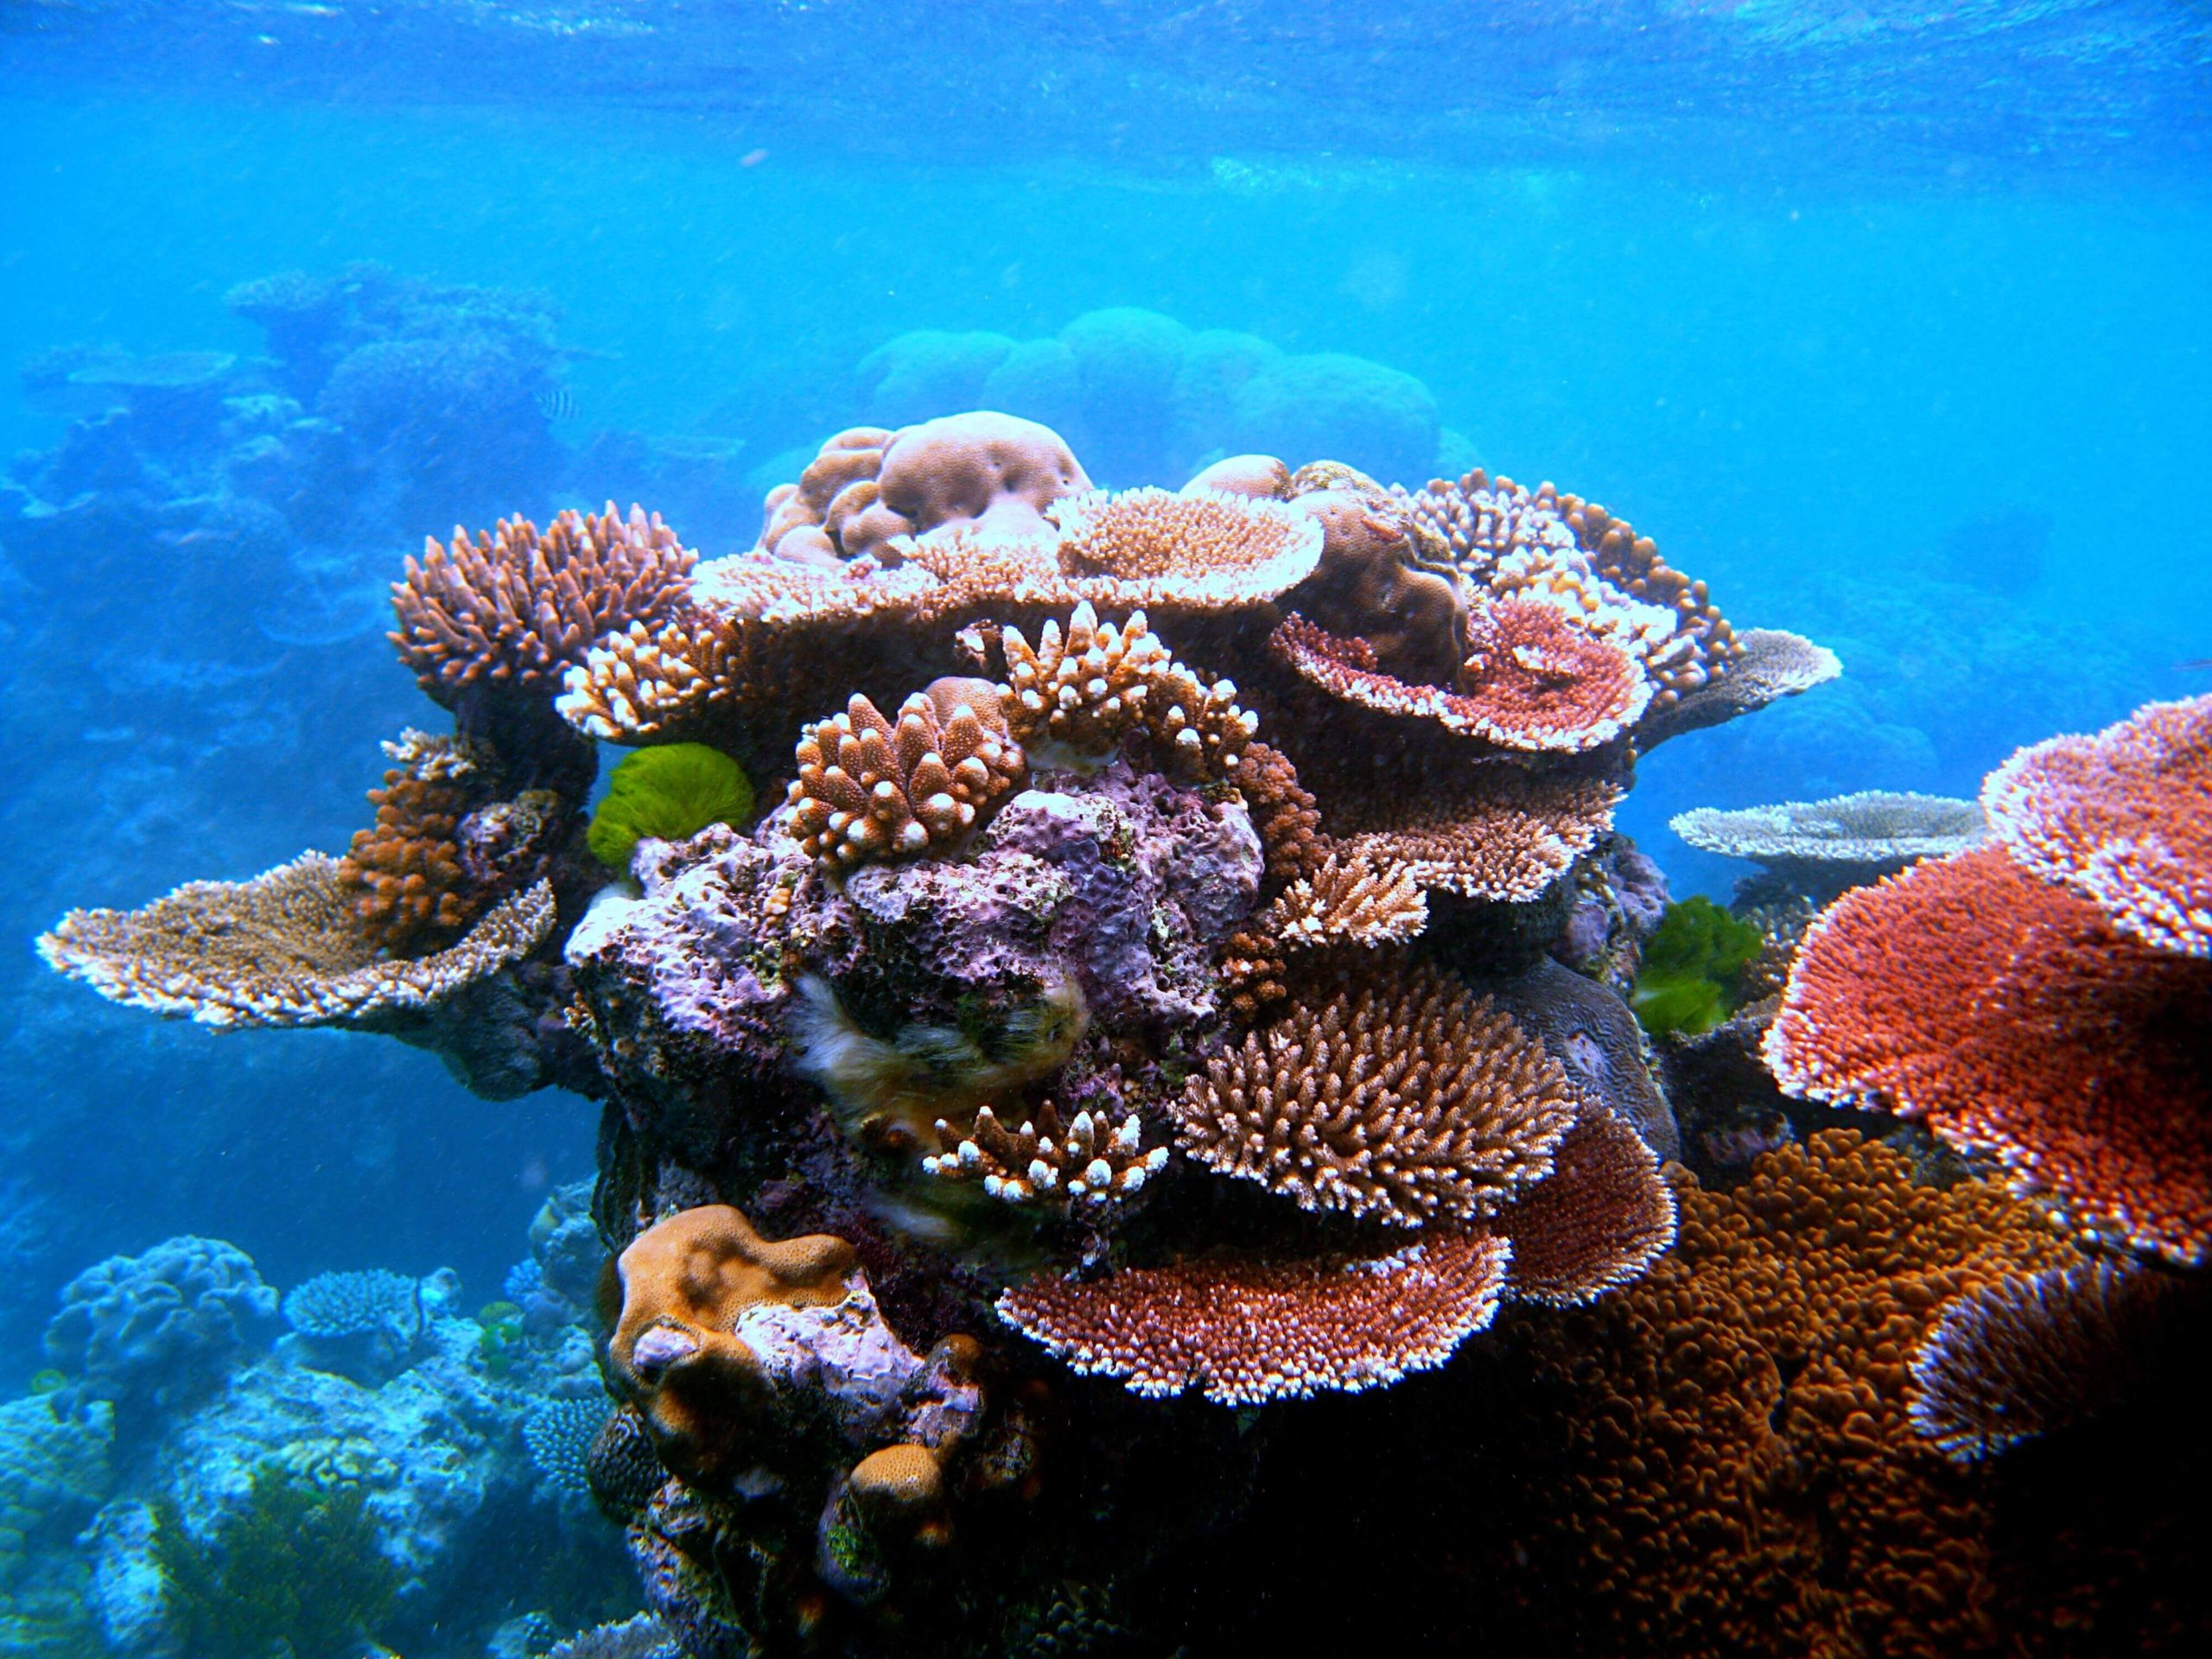 Orange coral reef in the ocean